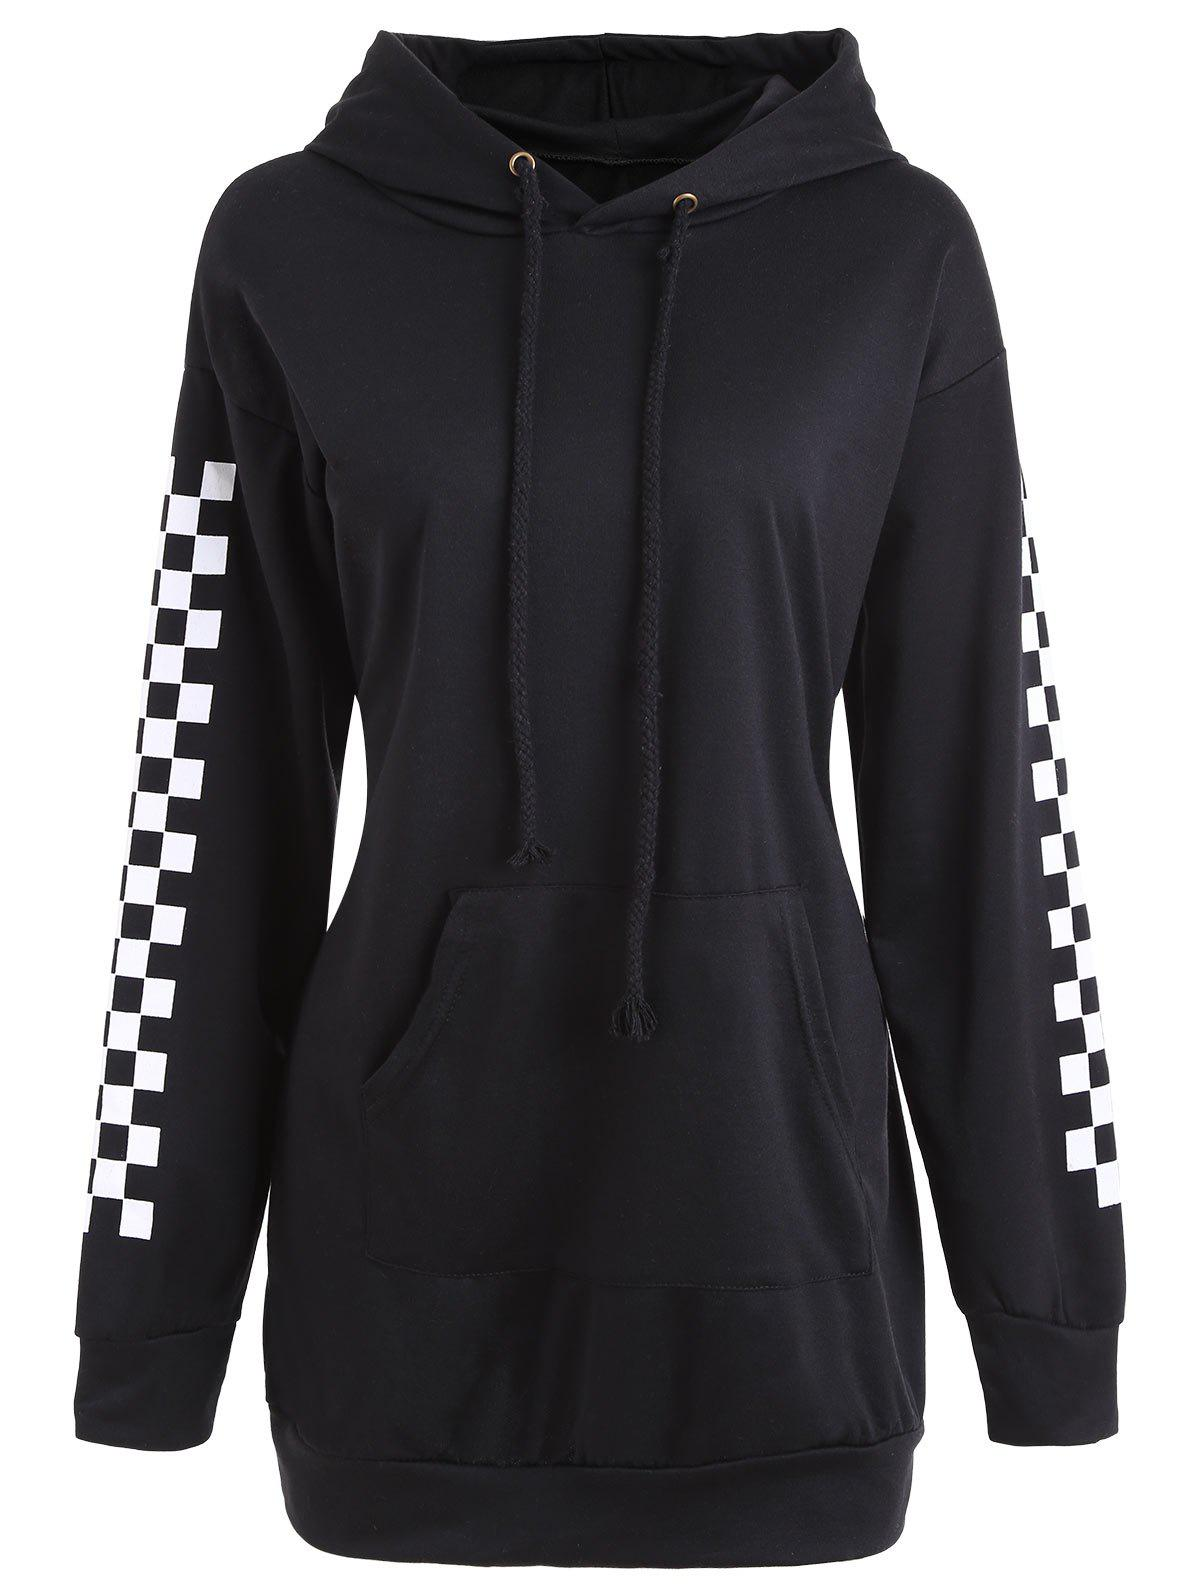 Drawstring Grid Mini Hoodie DressWOMEN<br><br>Size: M; Color: BLACK; Material: Cotton,Polyester; Shirt Length: Regular; Sleeve Length: Full; Style: Fashion; Pattern Style: Plaid; Season: Fall,Spring; Weight: 0.5500kg; Package Contents: 1 x Dress;